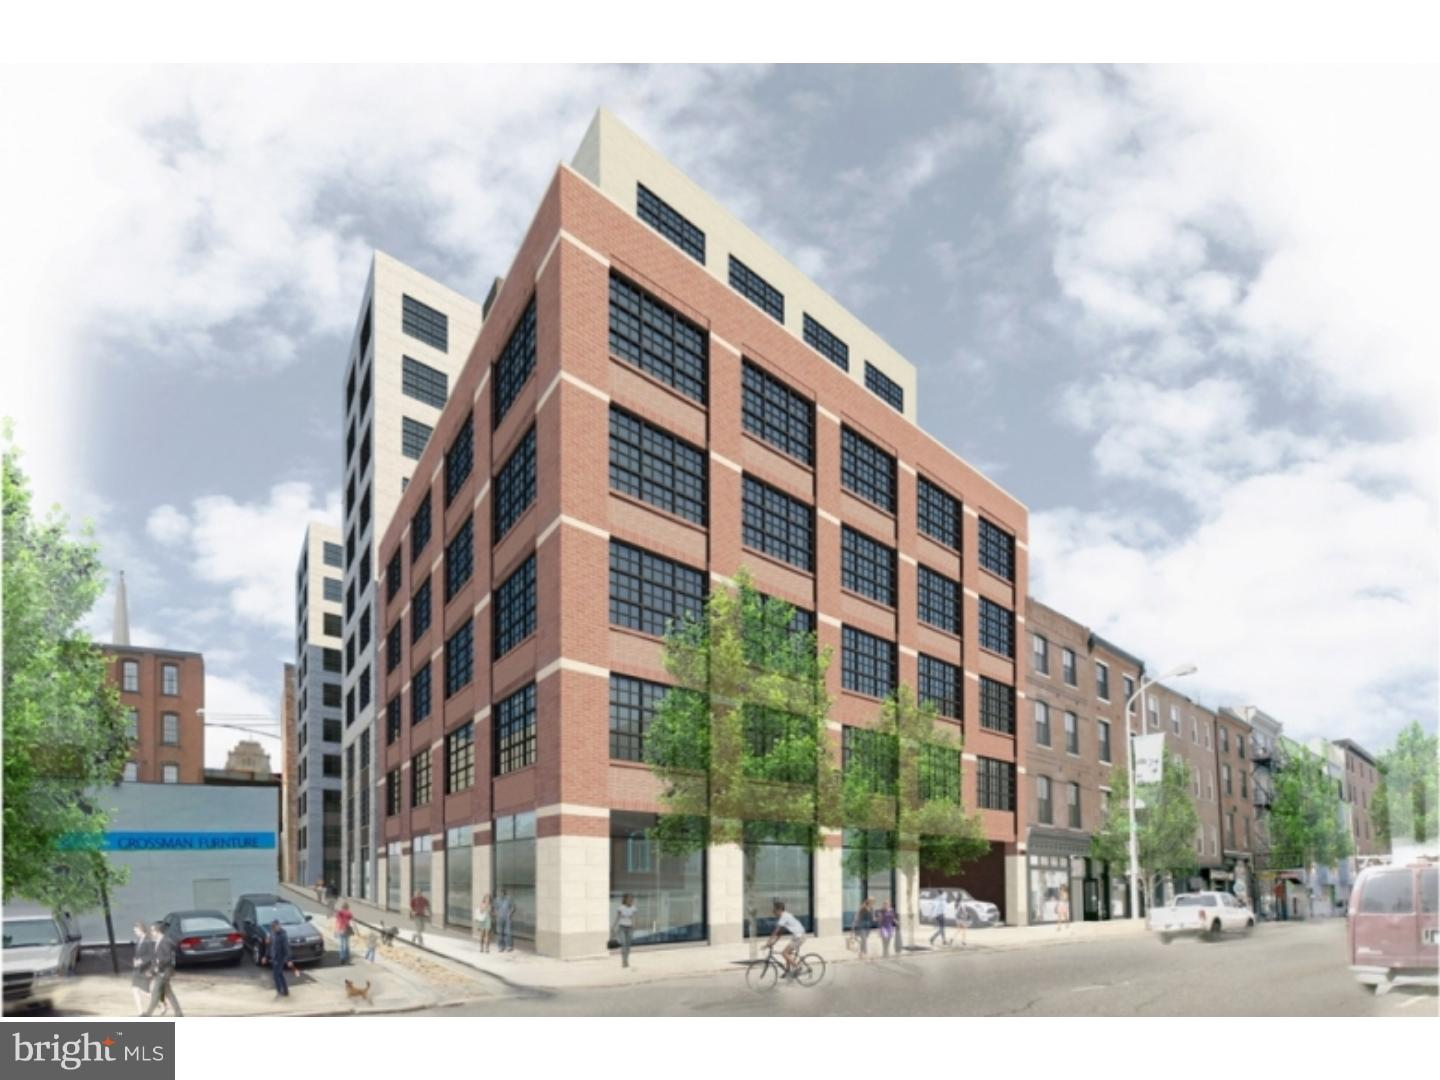 ONE MONTH FREE on a 13 month lease, and WAIVED APPLICATION FEES, for a limited time! Live in GREAT space, and FANTASTIC value in the heart OLD CITY, at 218 ARCH street! This well designed, and perfectly proportioned ONE BEDROOM has it all. HARDWOOD FLOORS, high ceilings, custom kitchen with GRANITE counter tops, and stainless steel appliances, stylish tile bath, and fantastic closet! This brand new OLD CITY property, by PMC offers: ROOF top lounge,with glorious views of the BEN FRANKLIN bridge and Center City, PRIVATE resident courtyard, GYM, PELATON room, LOUNGE,with flat screen TVs, billiards, business center, and GARAGE parking for additional fee! ! ! Photo's are of model unit.